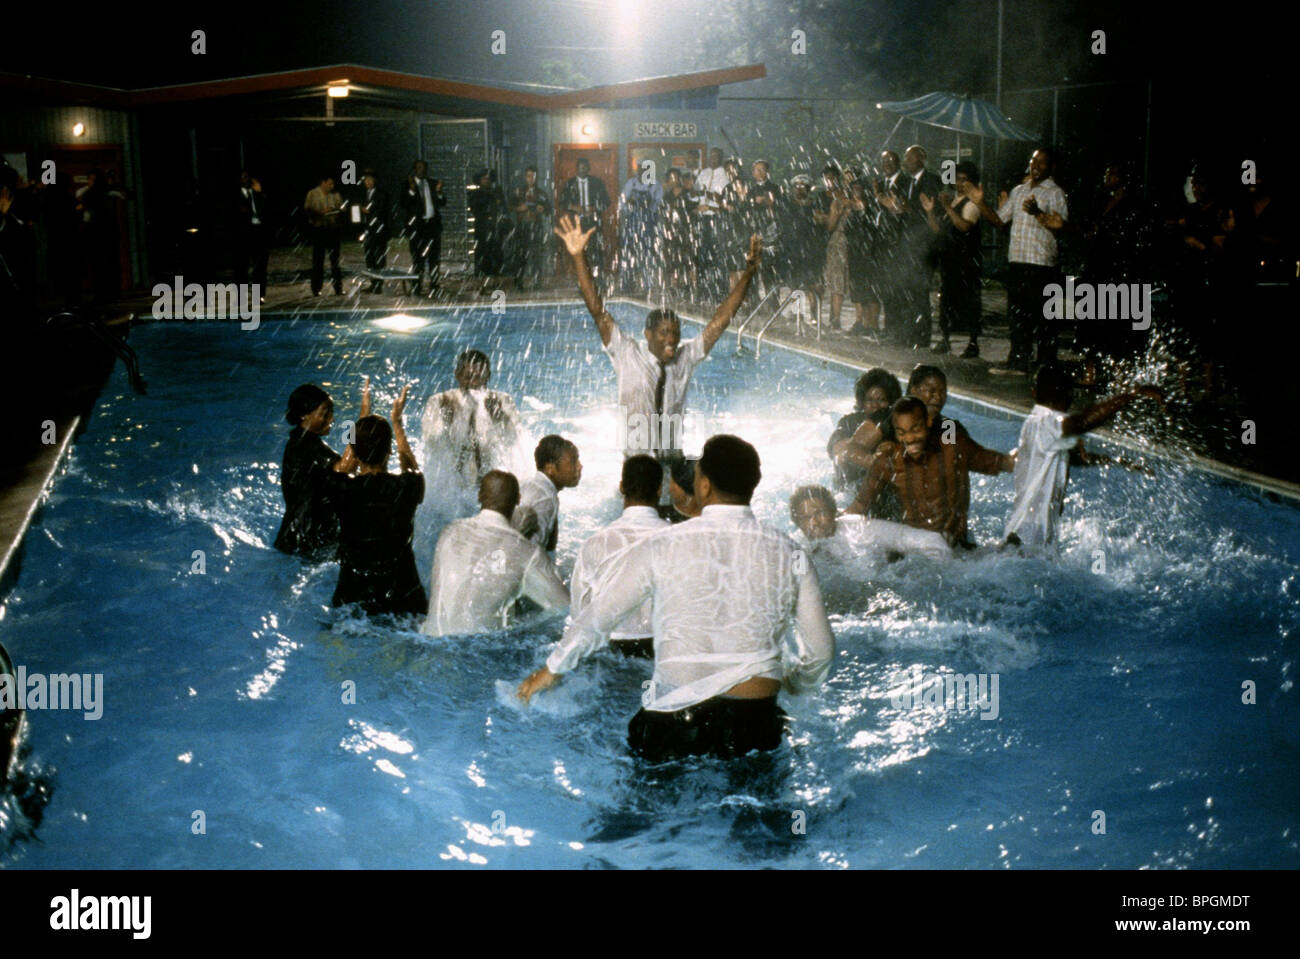 swimming pool scene crazy in alabama 1999